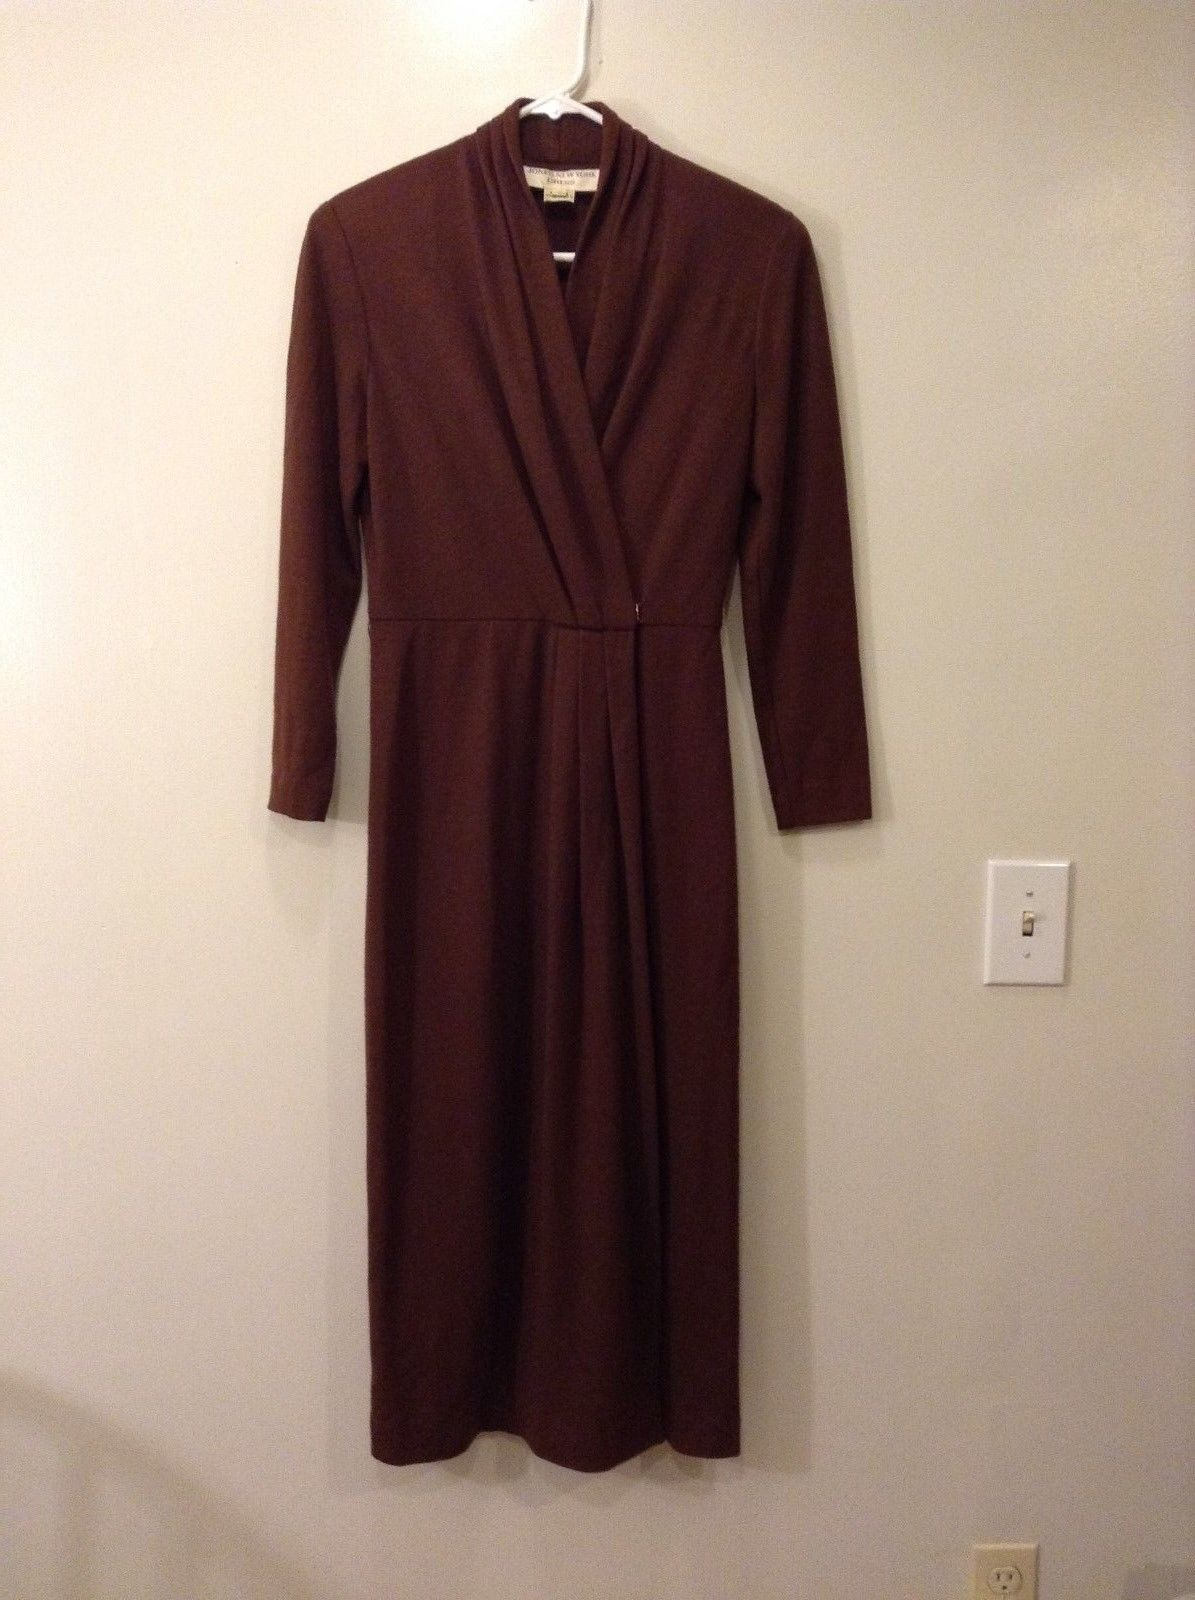 Ladies Jones New York Long Brown Wool Dress Sz 4